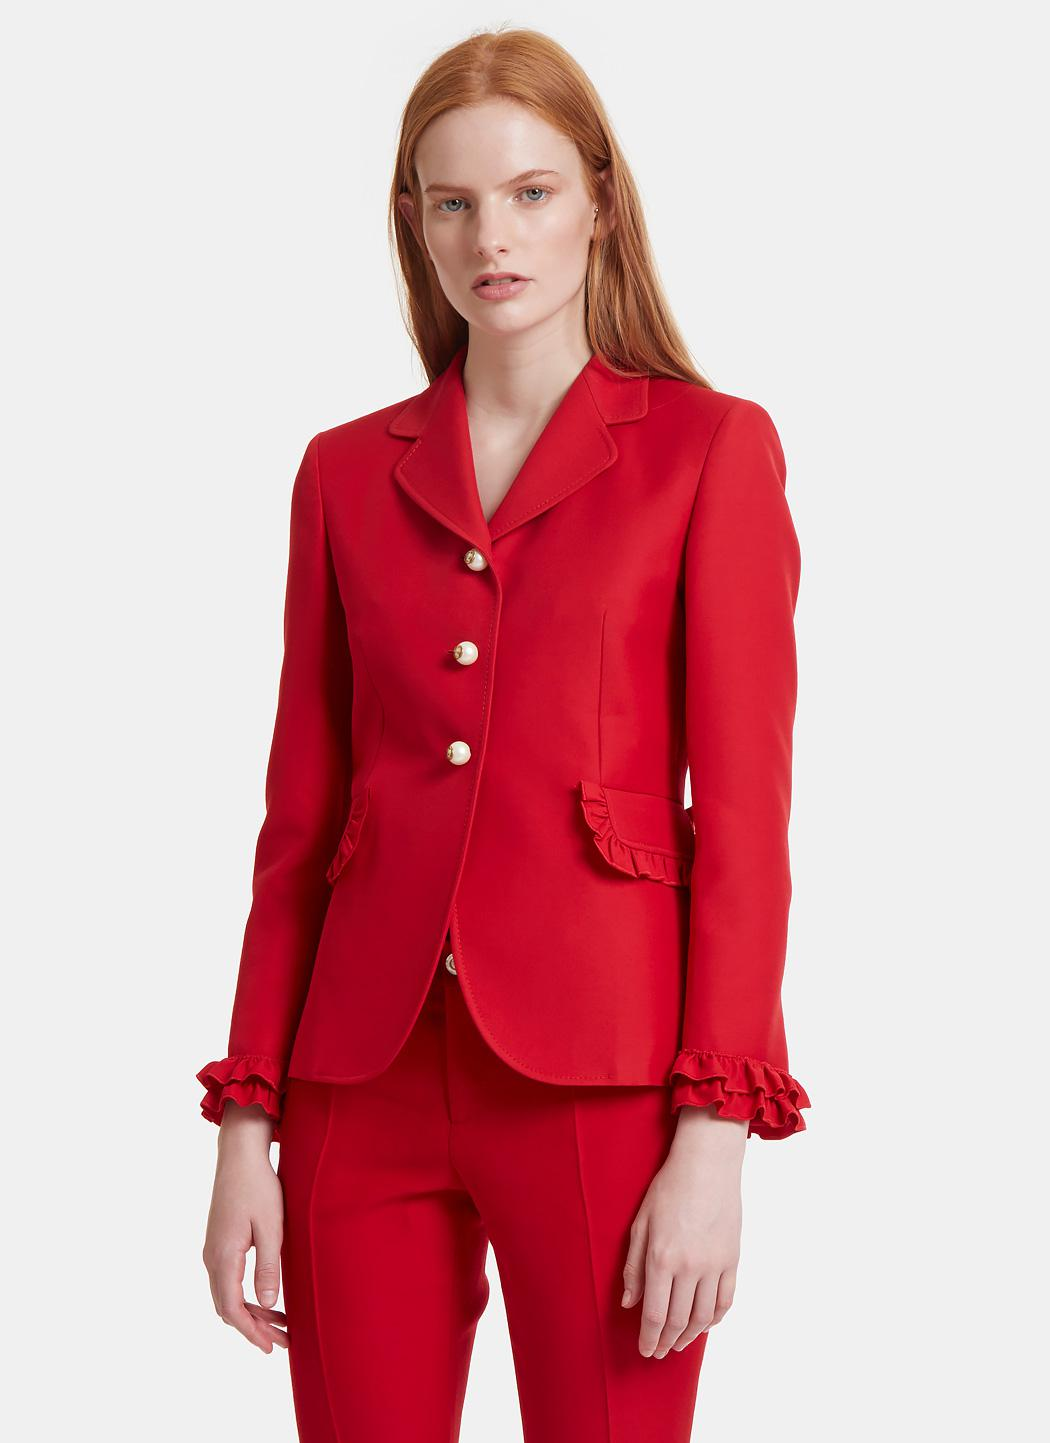 Red blazer jacket for women